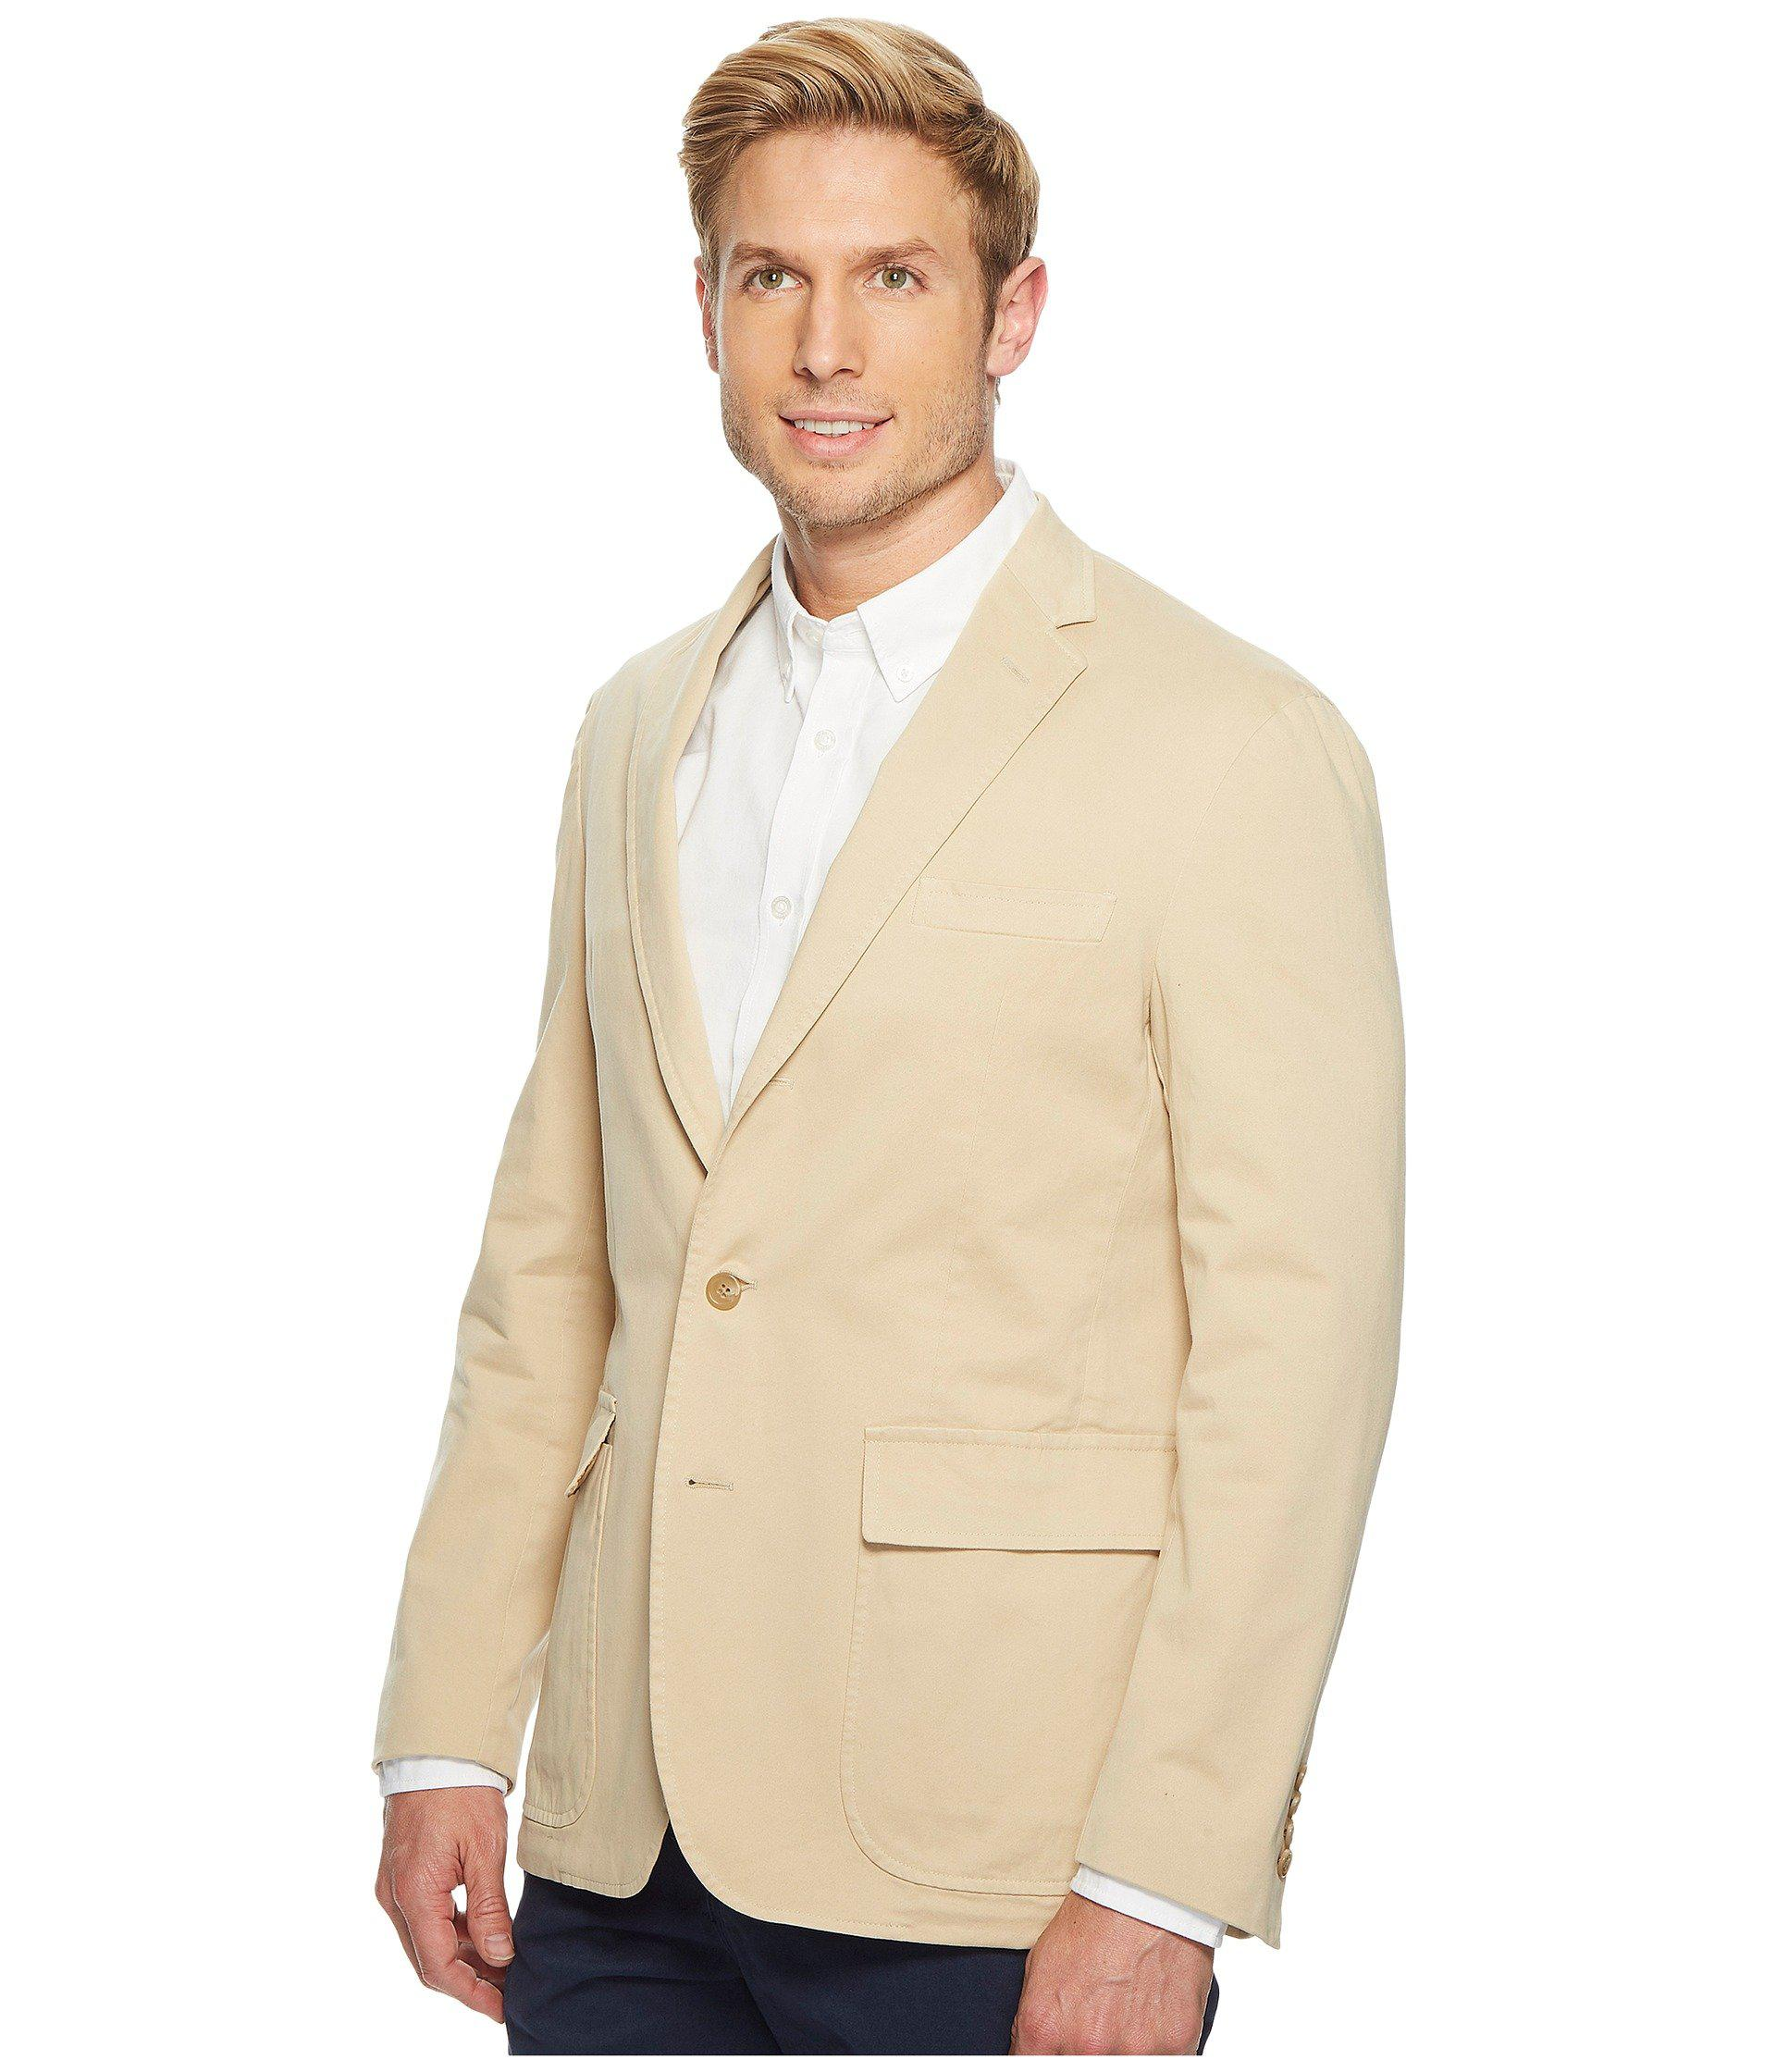 b18a6d32a8e Lyst - Polo Ralph Lauren Garment Dyed Cotton Stretch Sportcoat in Natural  for Men - Save 50%